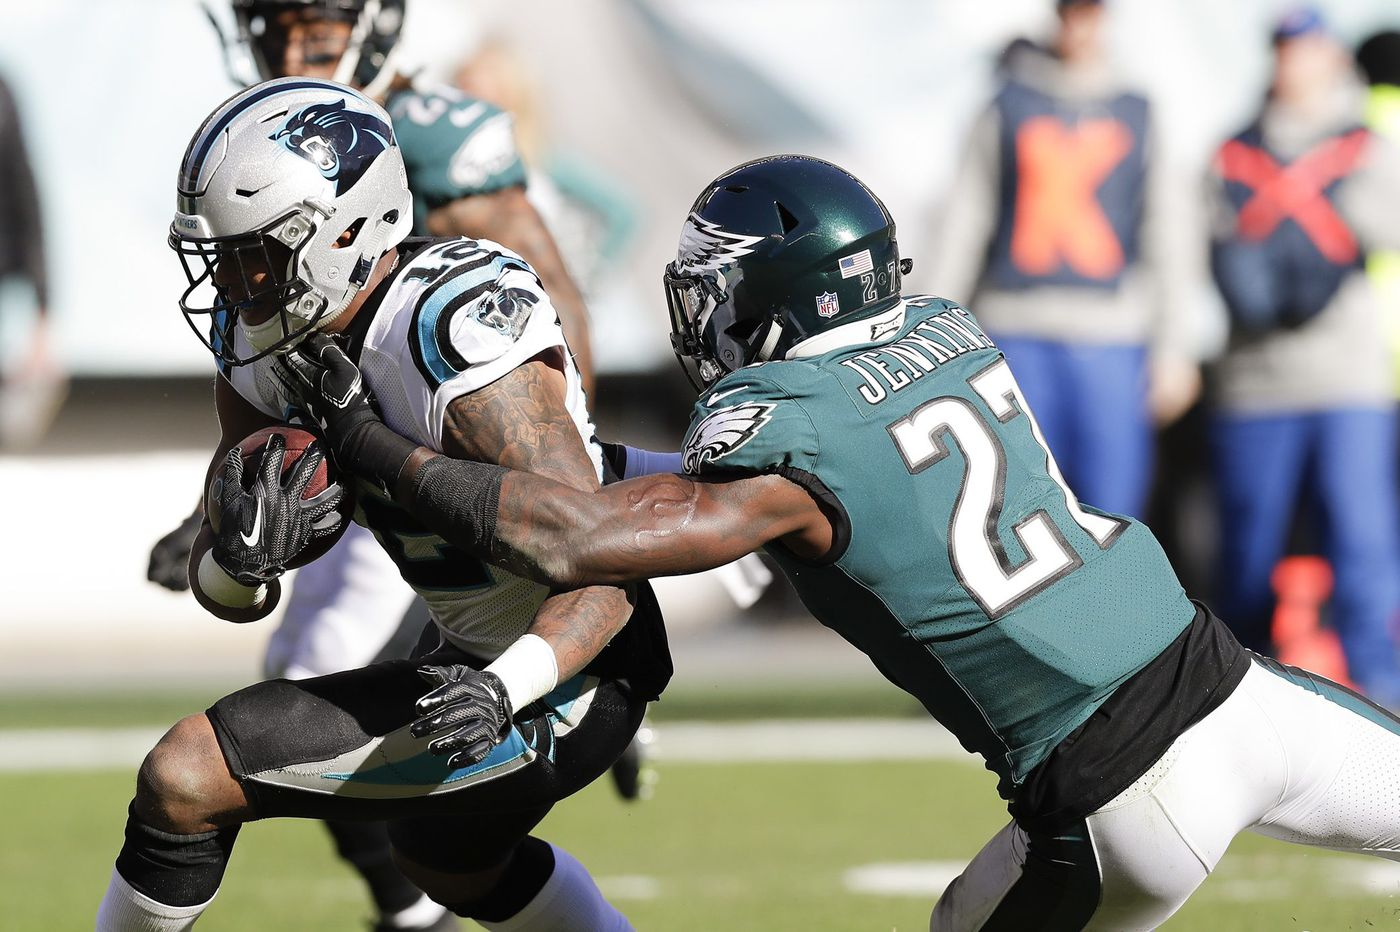 Five reasons the Eagles lost to the Panthers | Paul Domowitch